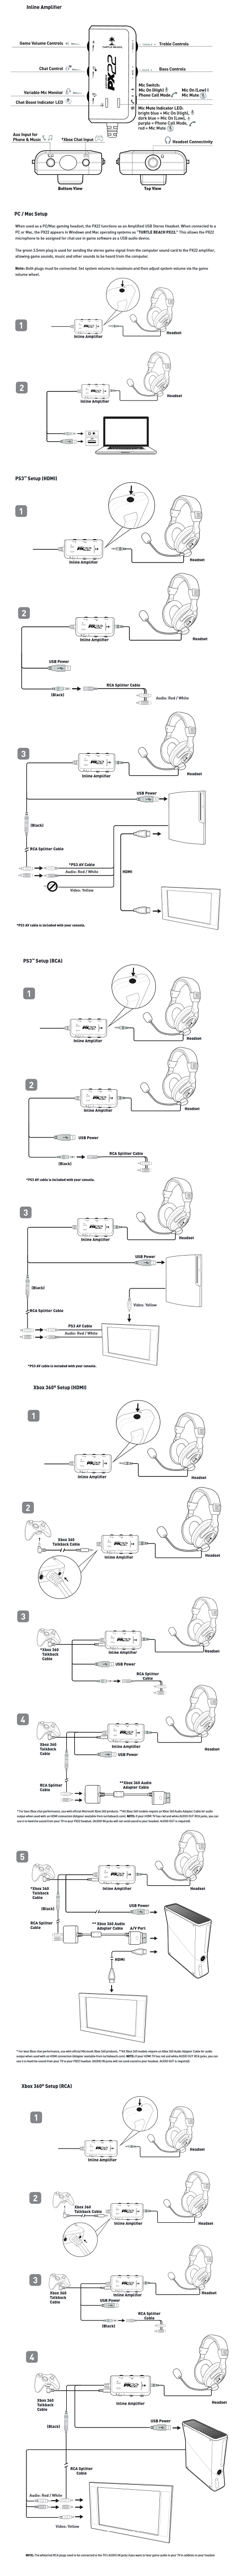 PX22_SETUP turtle beach px22 wiring diagram how to rewire turtle beach Ear Force PX21 at webbmarketing.co